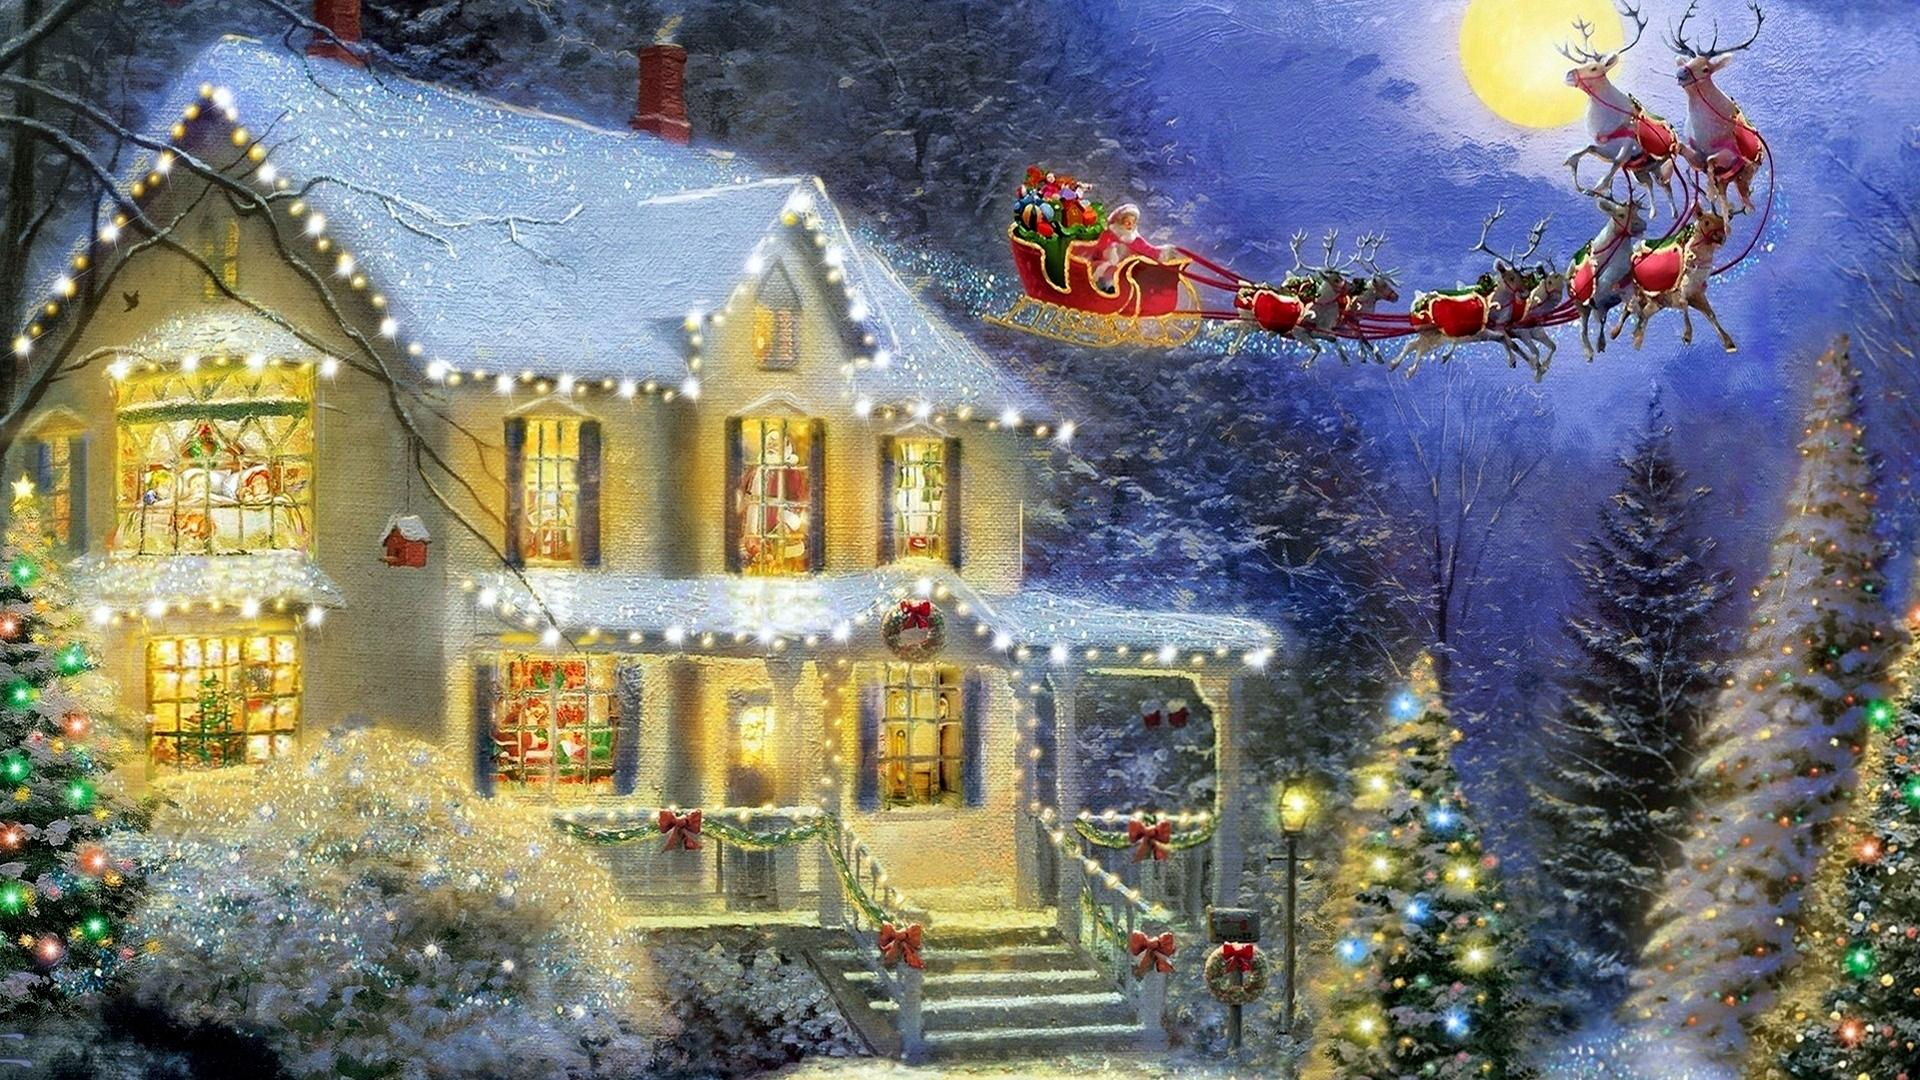 christmas background images, christmas background hd